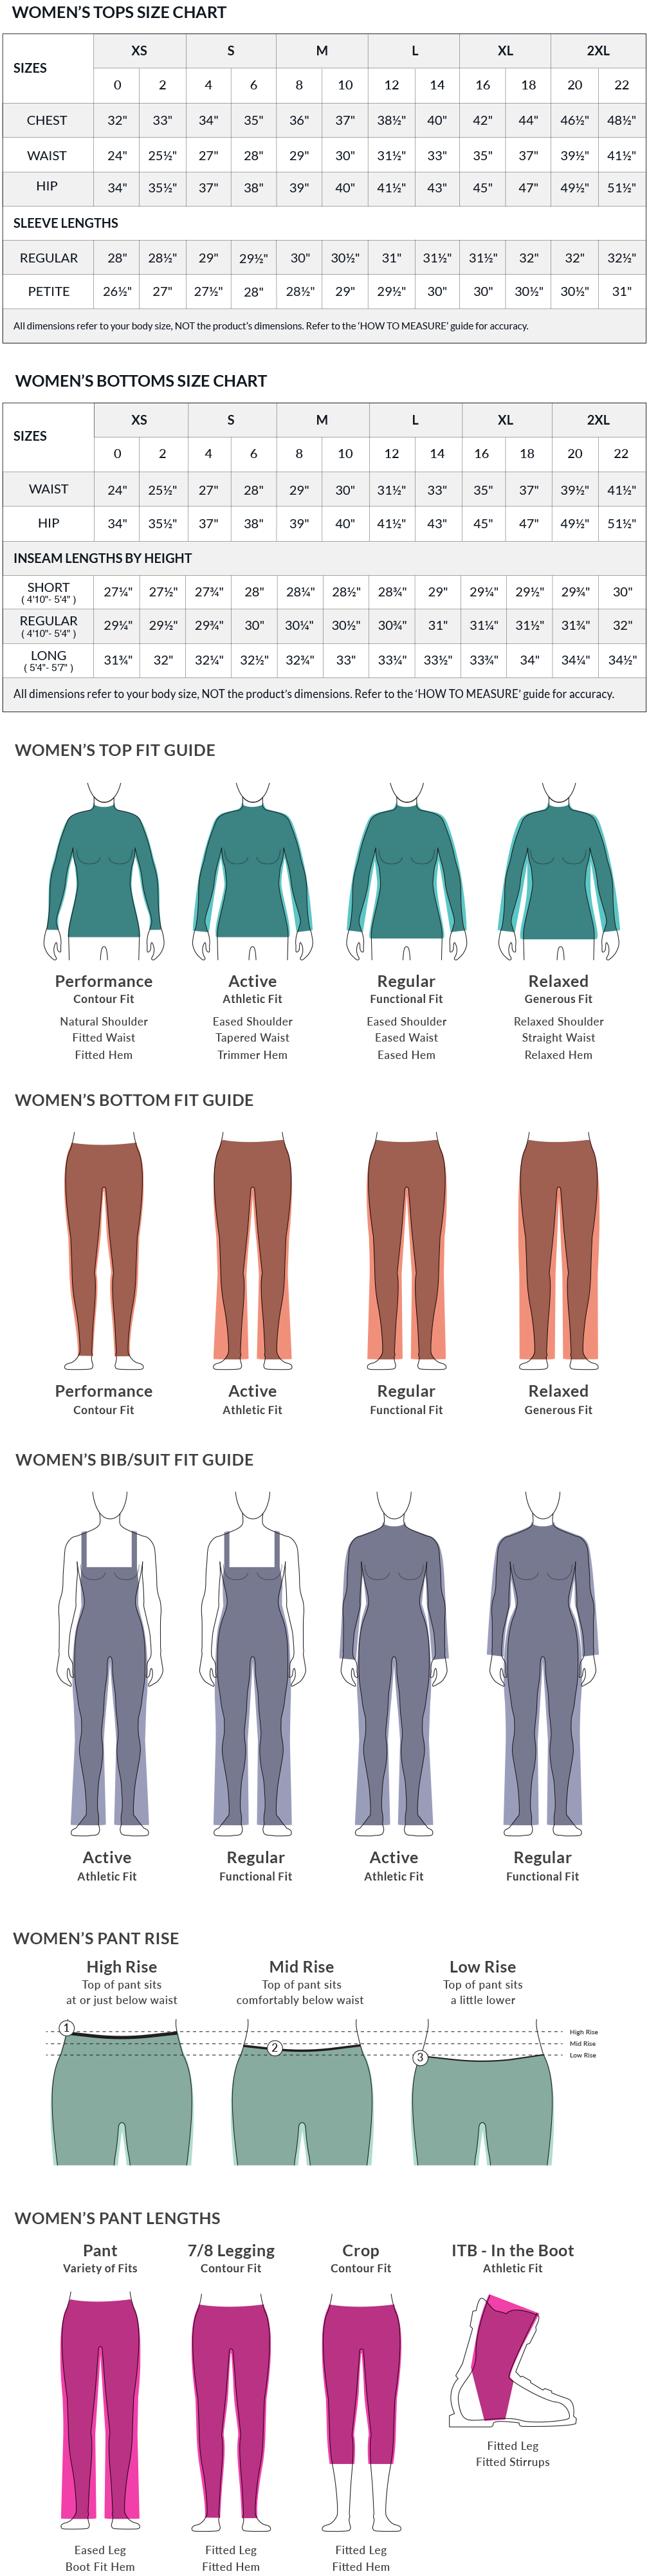 Women's Size Chart and Fit Guide